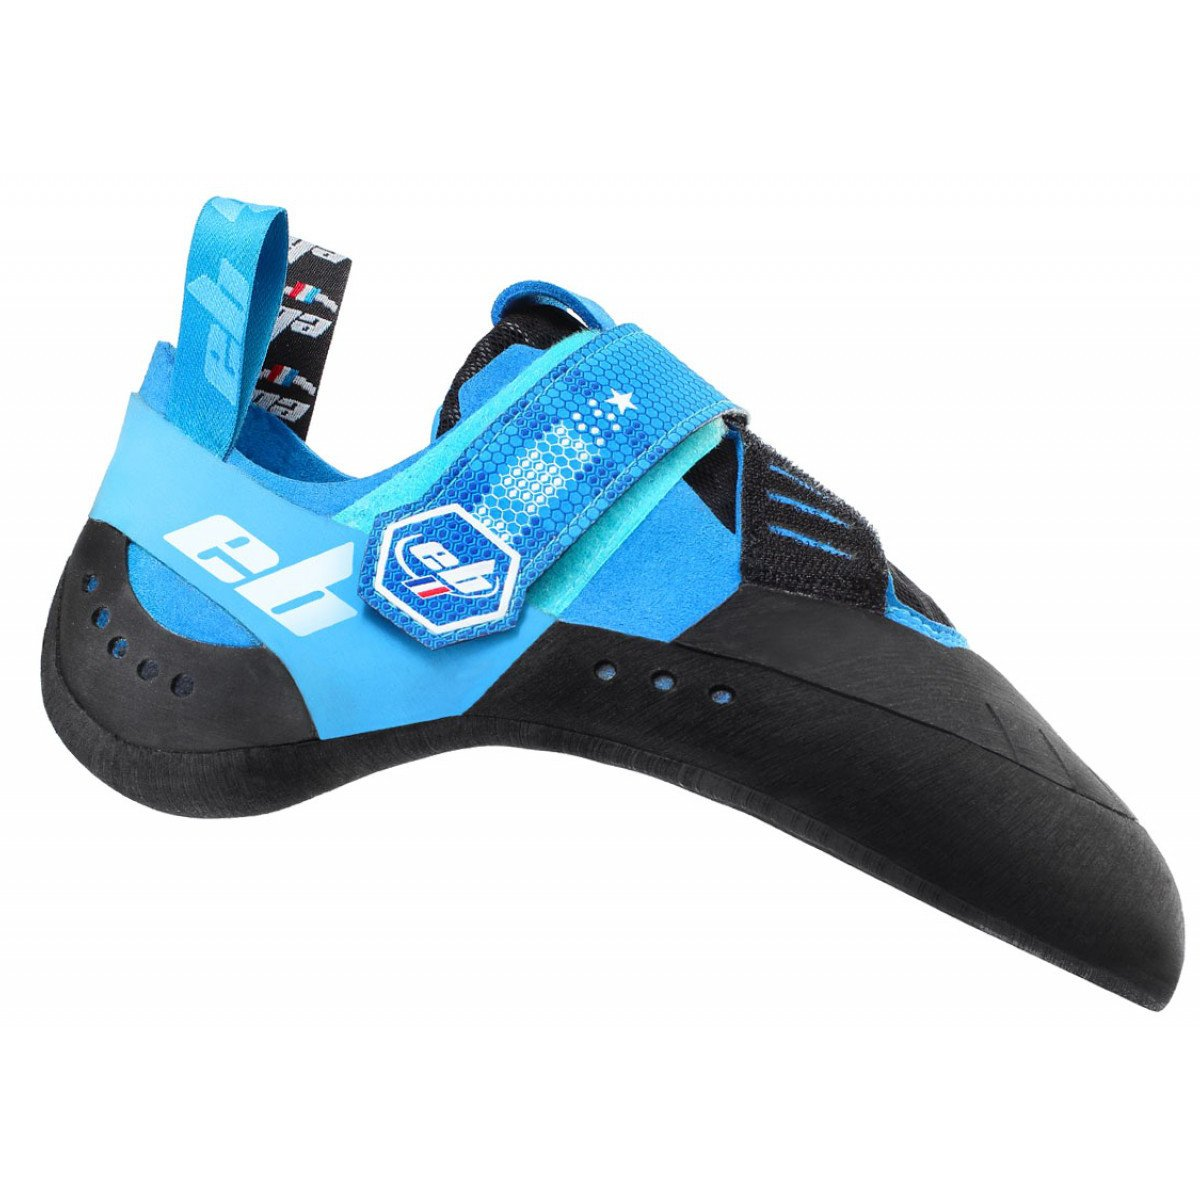 EB Nebula climbing shoe, outer side view in blue and black colours, showing strap closure